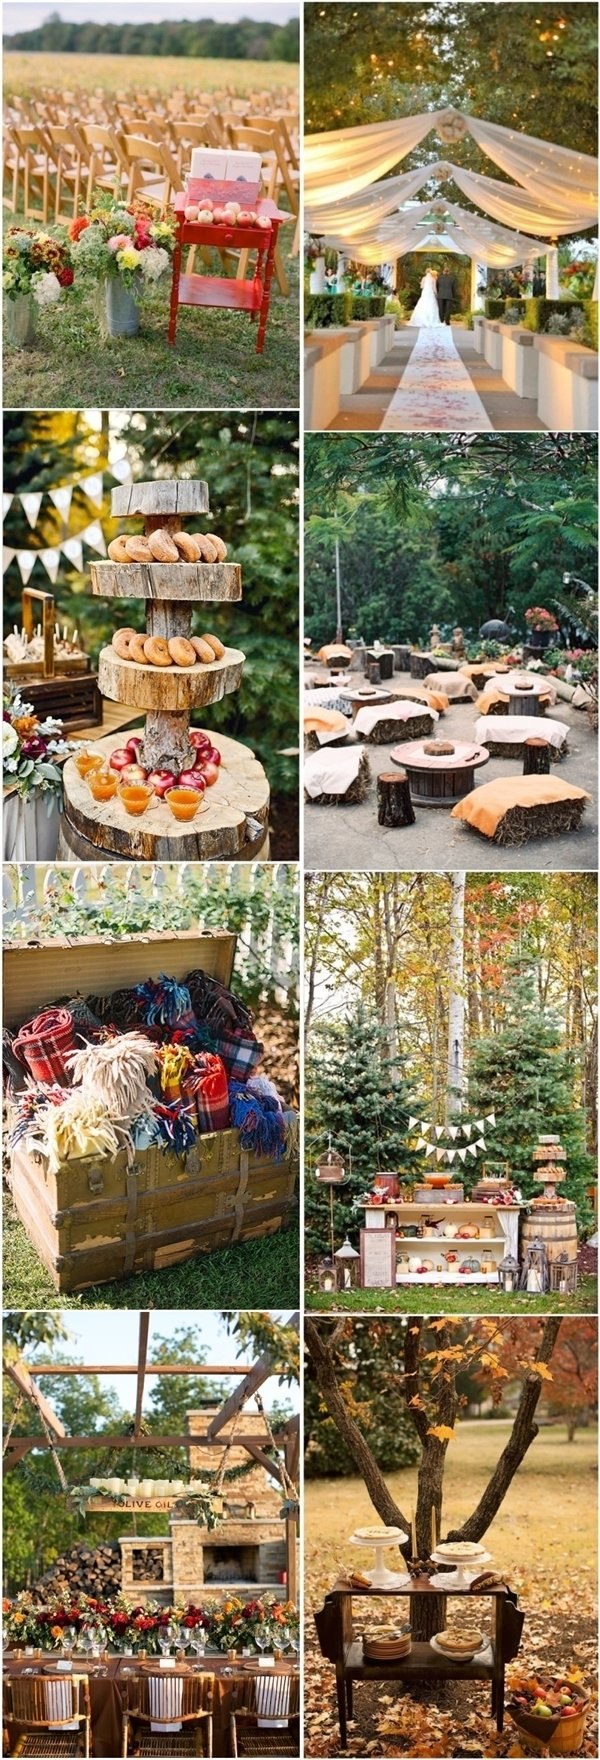 10 Awesome Outdoor Wedding Ideas For Fall 40 amazing outdoor fall wedding decor ideas deer pearl flowers 2021